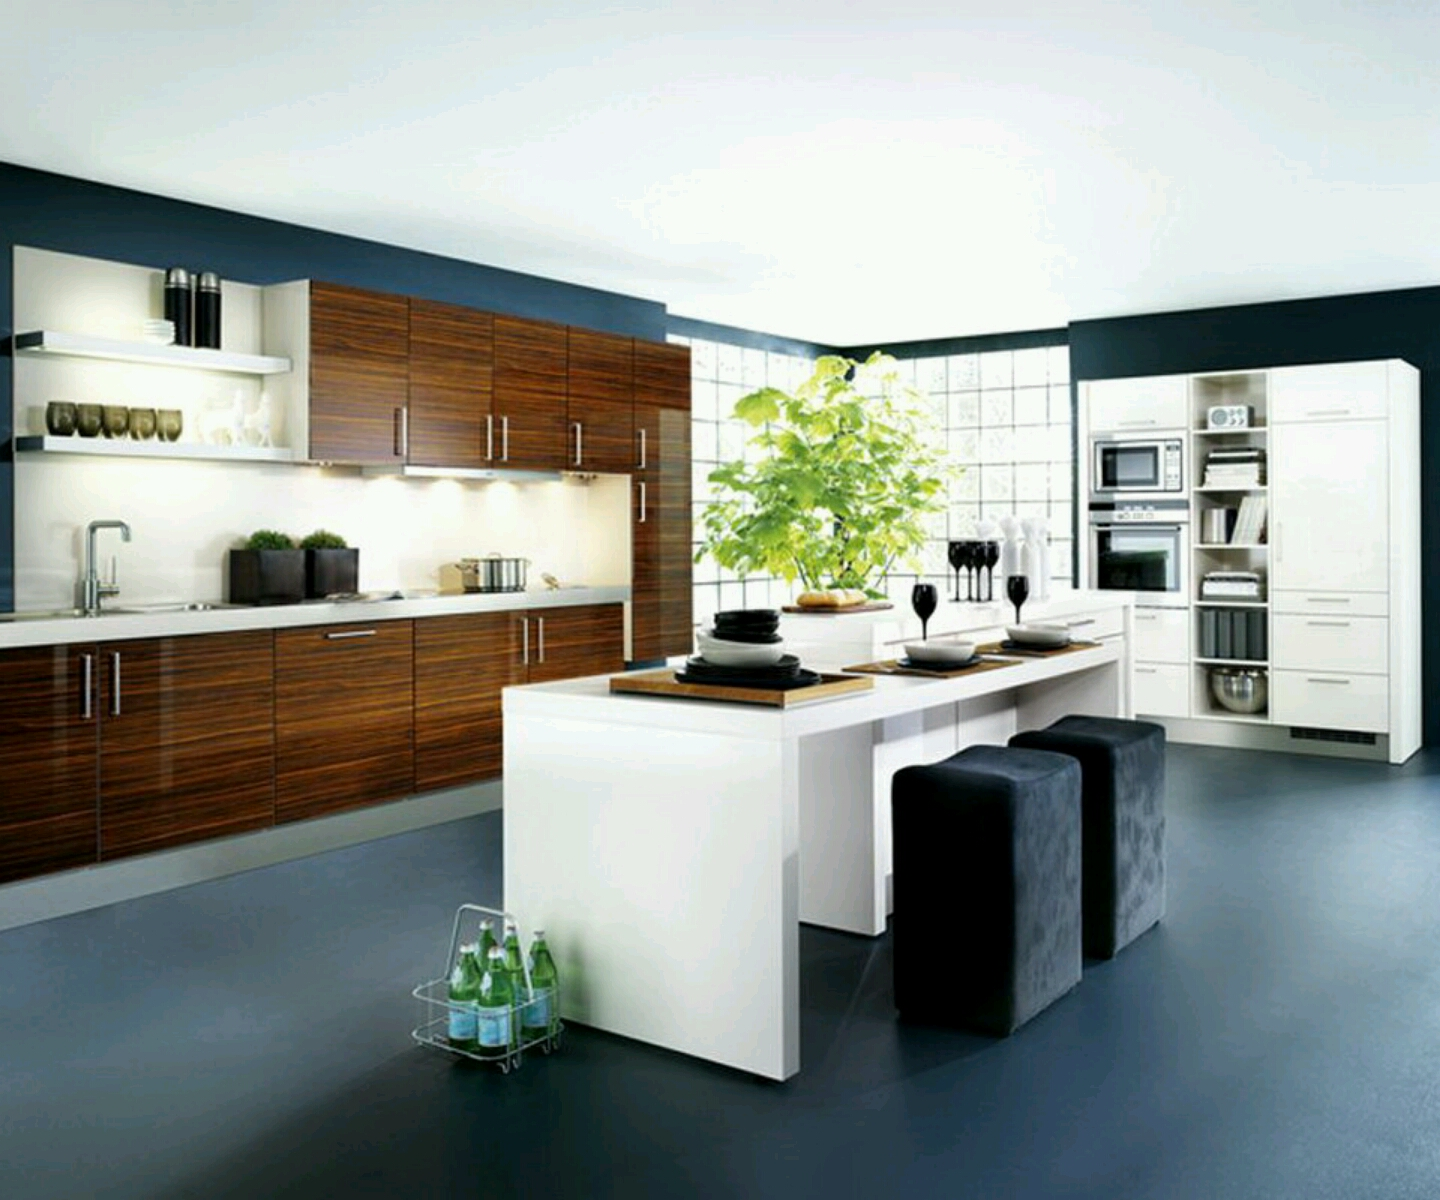 New home designs latest kitchen cabinets designs modern for New kitchen ideas photos